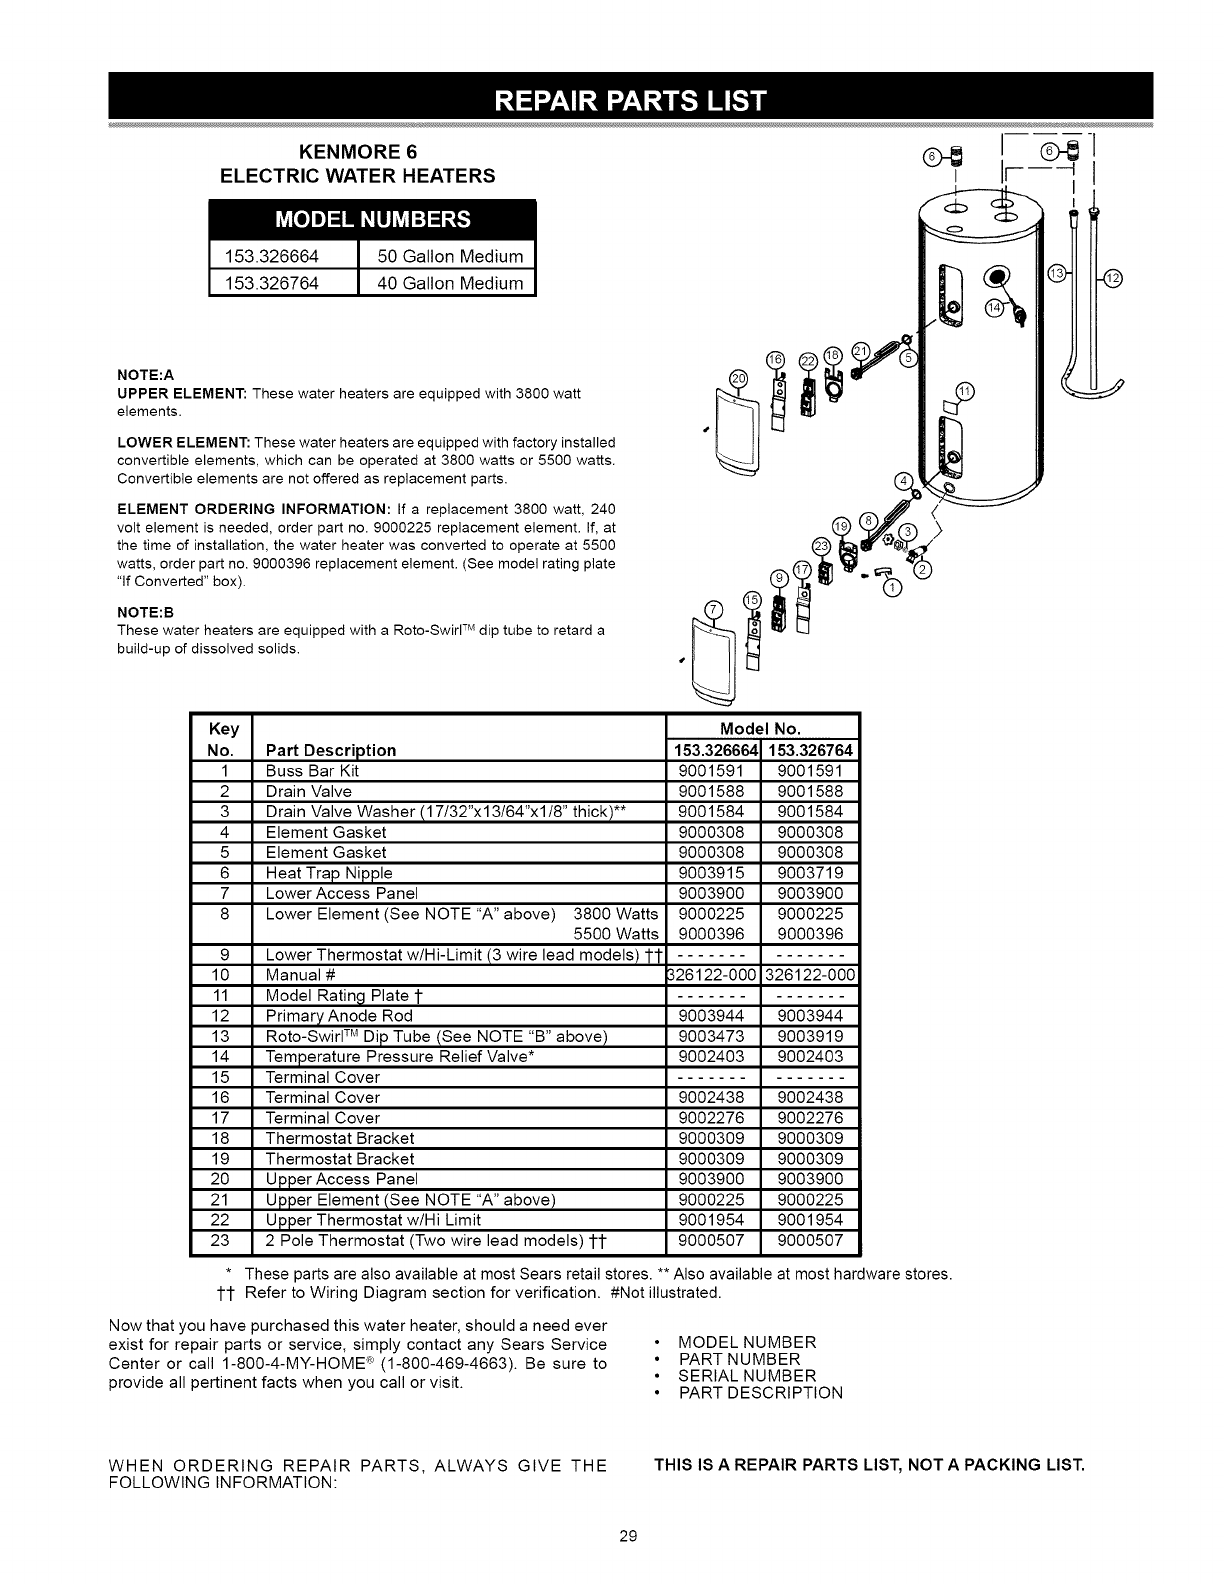 Kenmore 153326364 user manual water heater manuals and guides 1310198l kenmore 6i ccuart Images